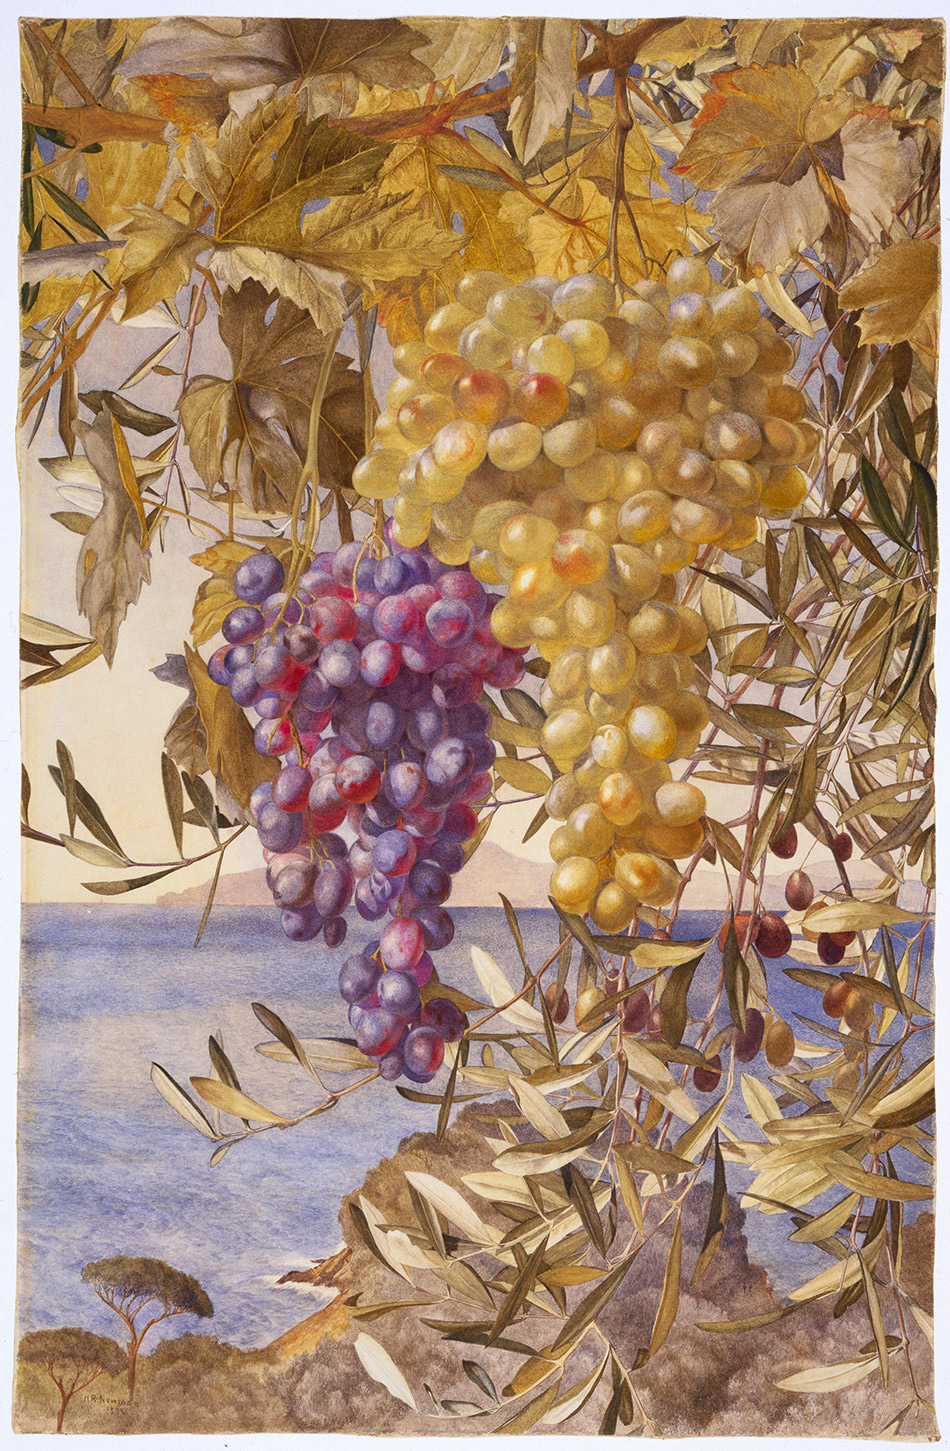 Henry-Roderick-Newman_Grapes-and-Olives-1878_4104-010_Brooklyn-Museum--New-York_950w